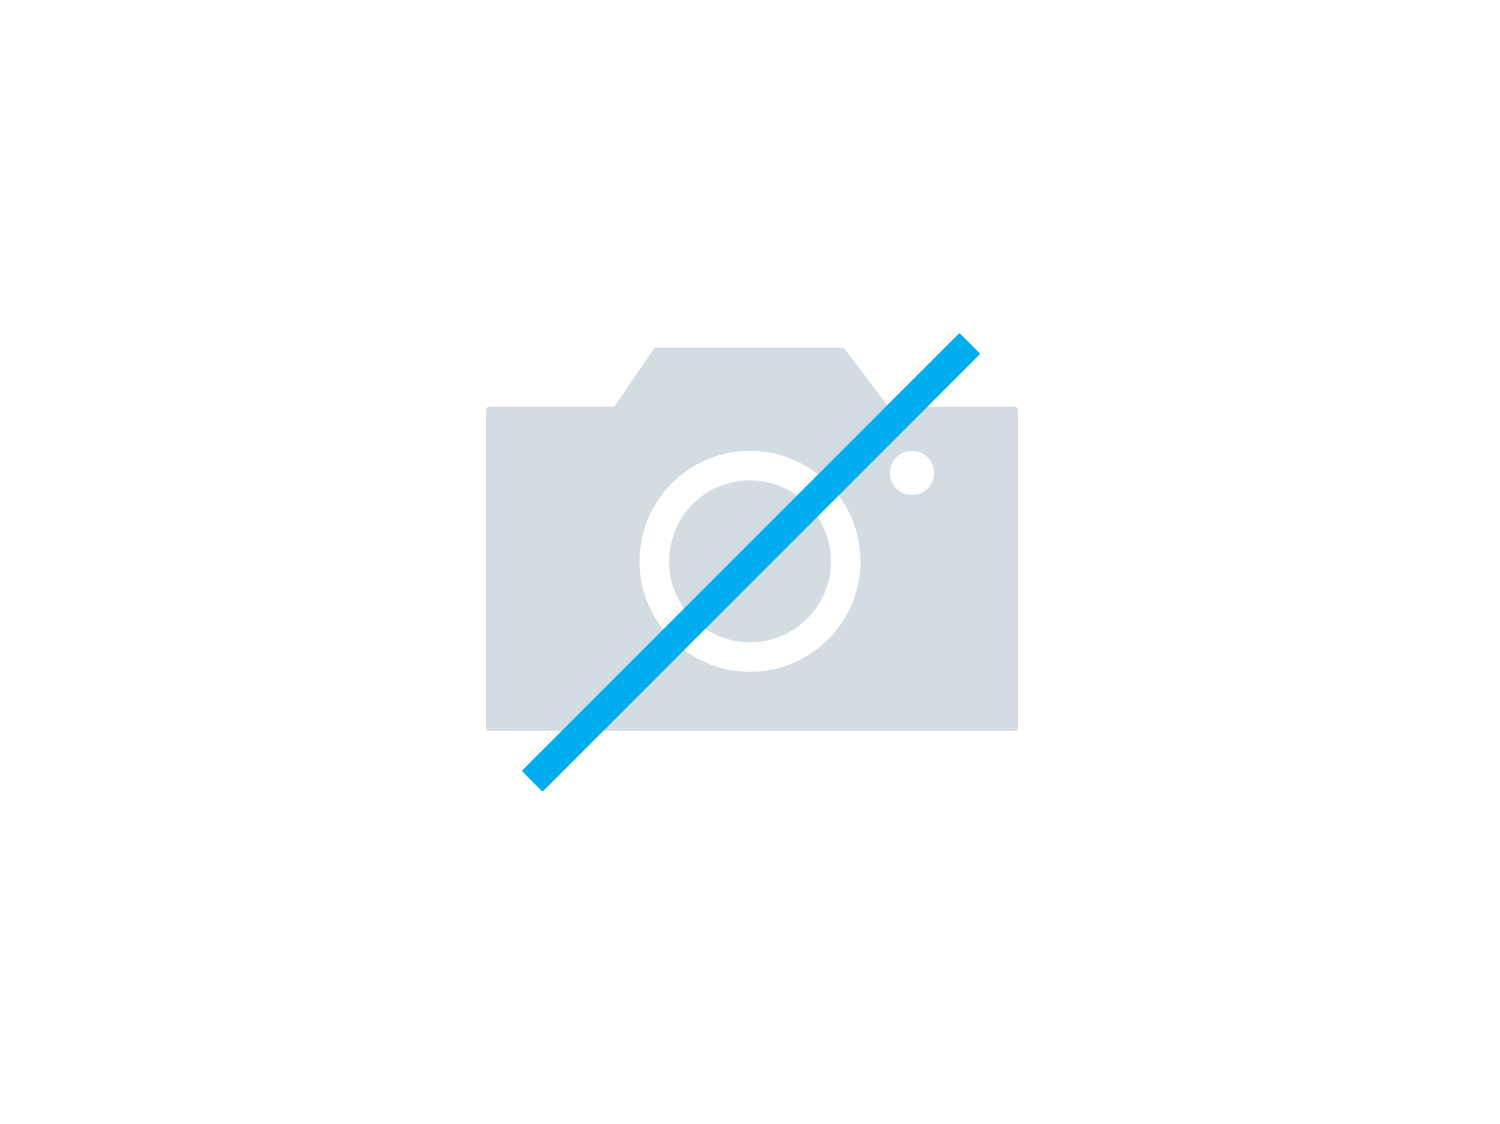 coussin de garnissage de duvet et de plumes 45x45cm blanc weba meubles. Black Bedroom Furniture Sets. Home Design Ideas